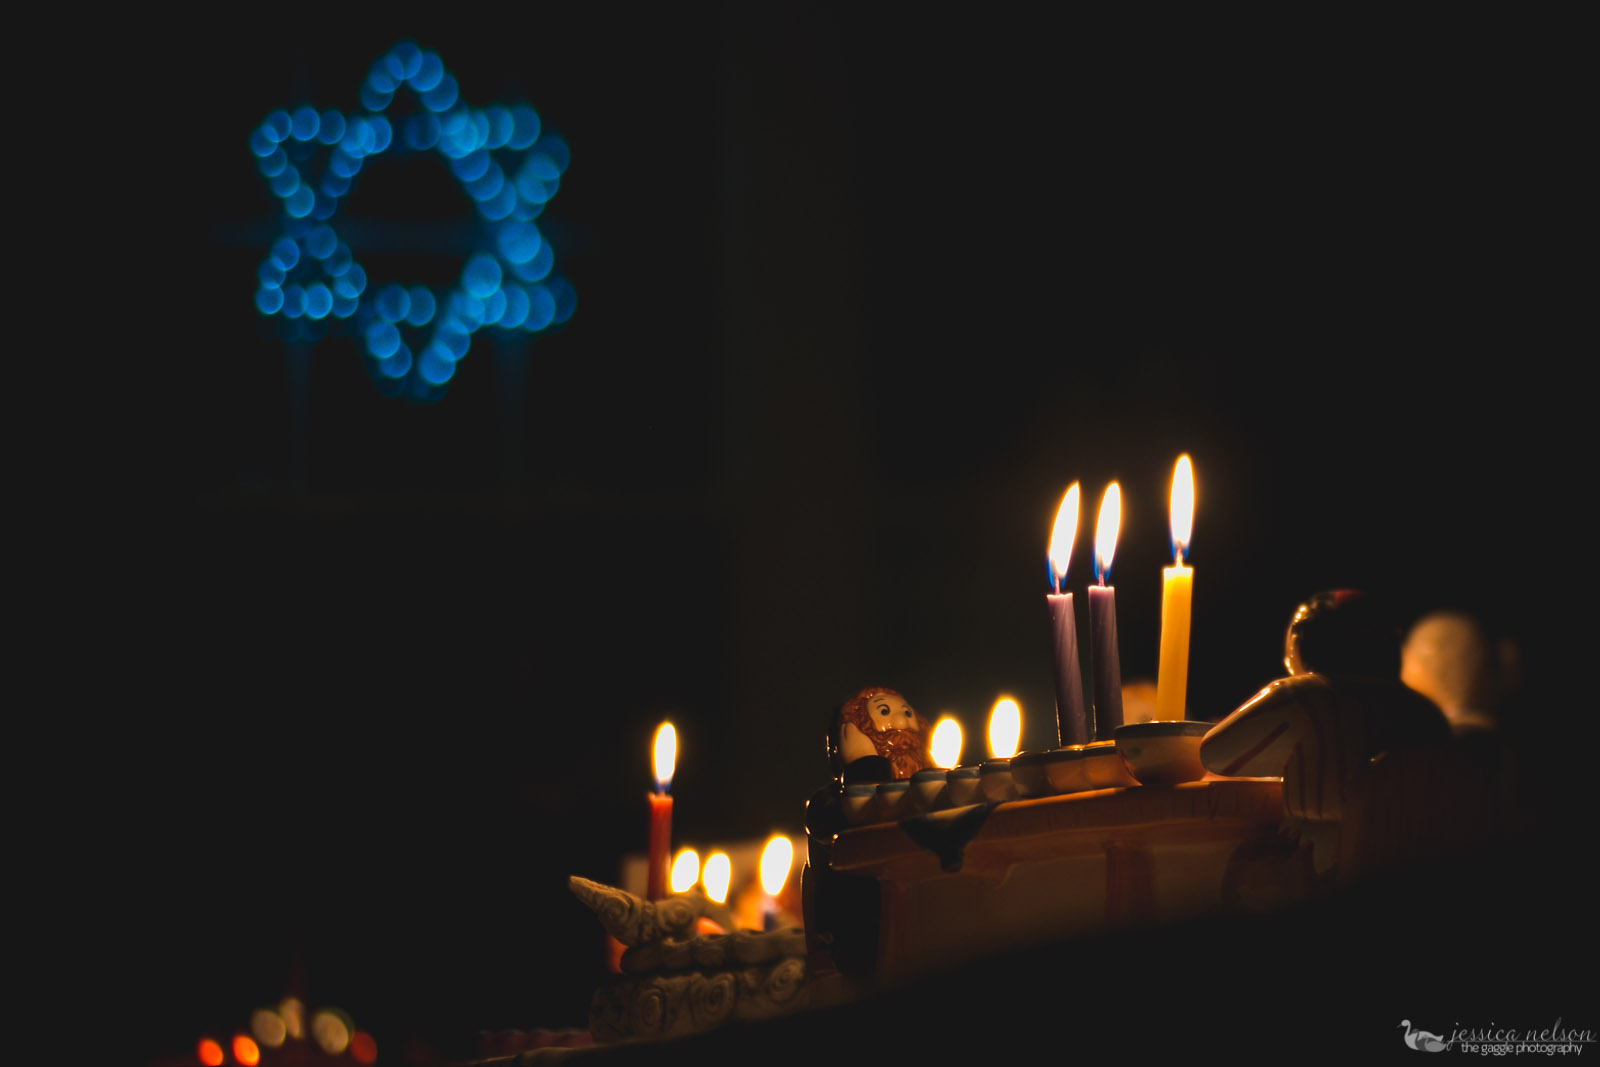 8 ways to photograph your hanukkah celebration by Jessica Nelson